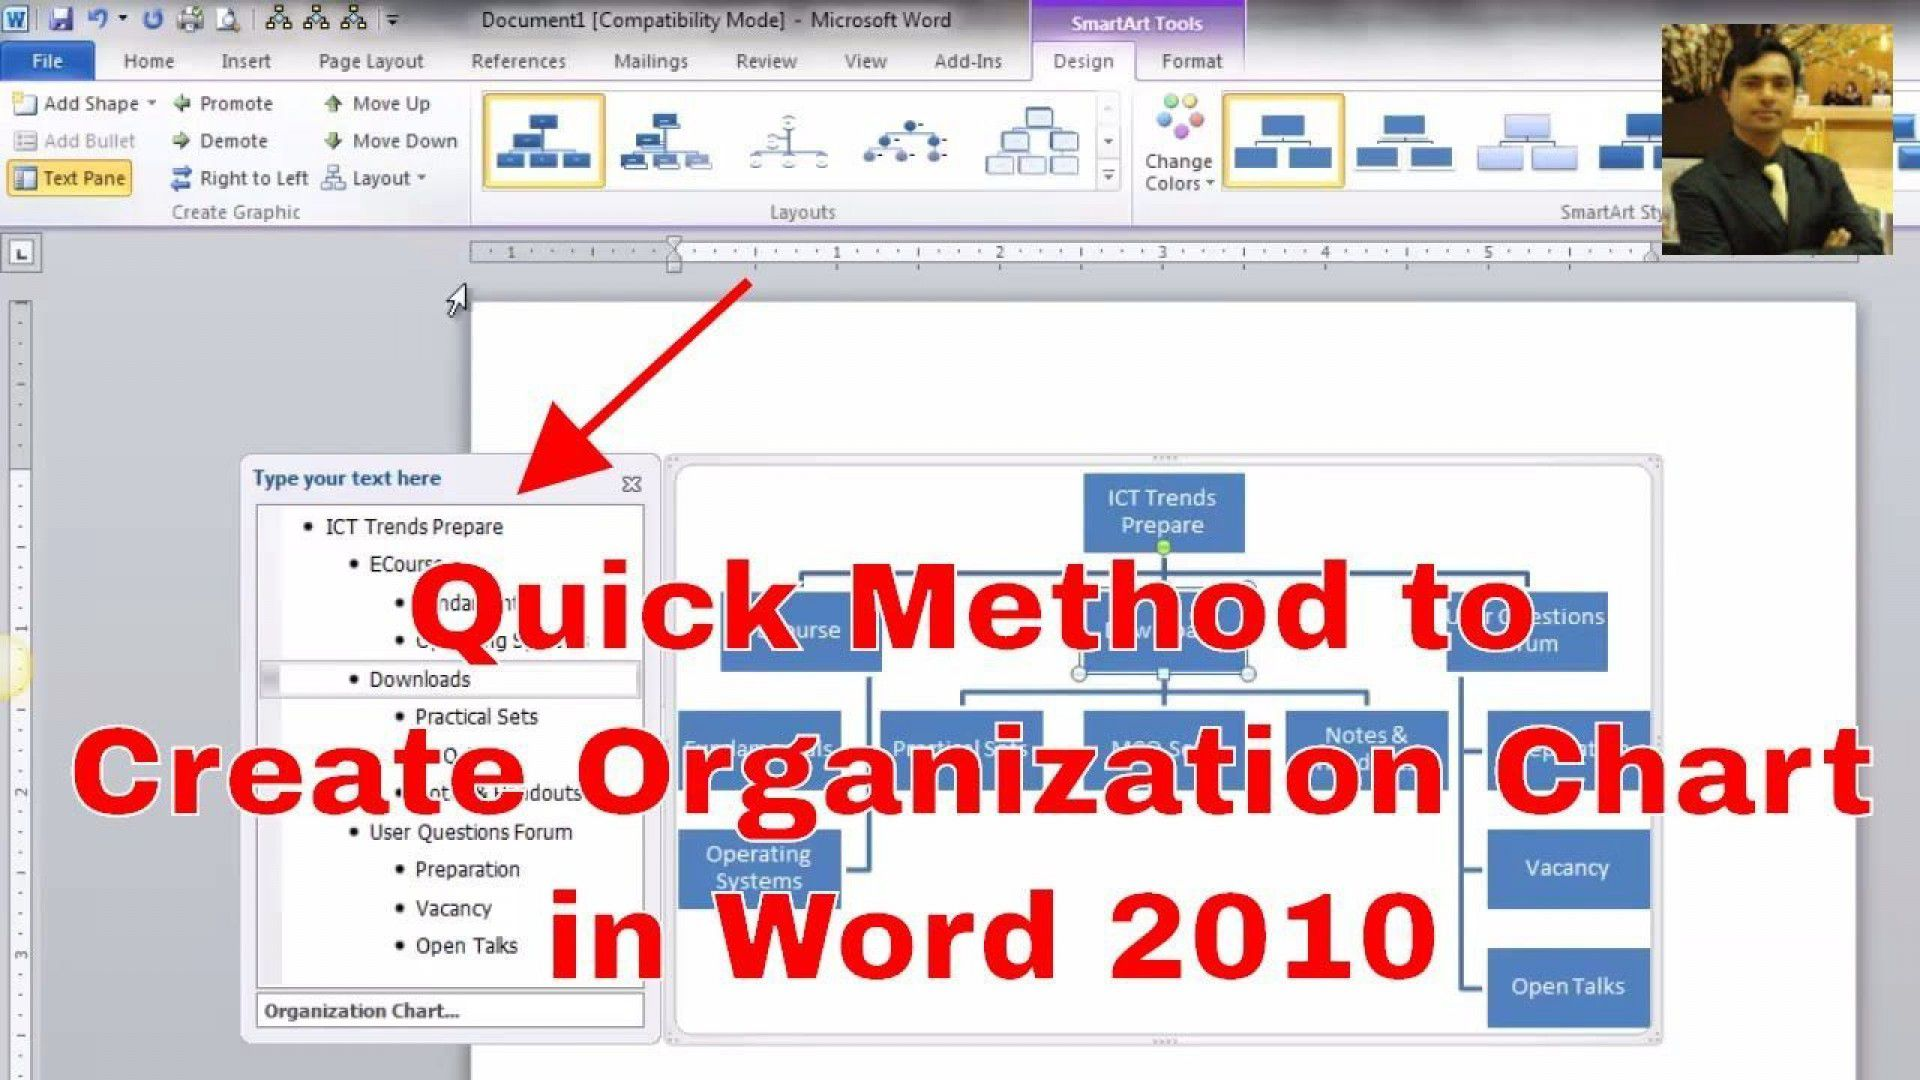 000 Awesome Microsoft Office Organizational Chart Template 2010 High Definition Full